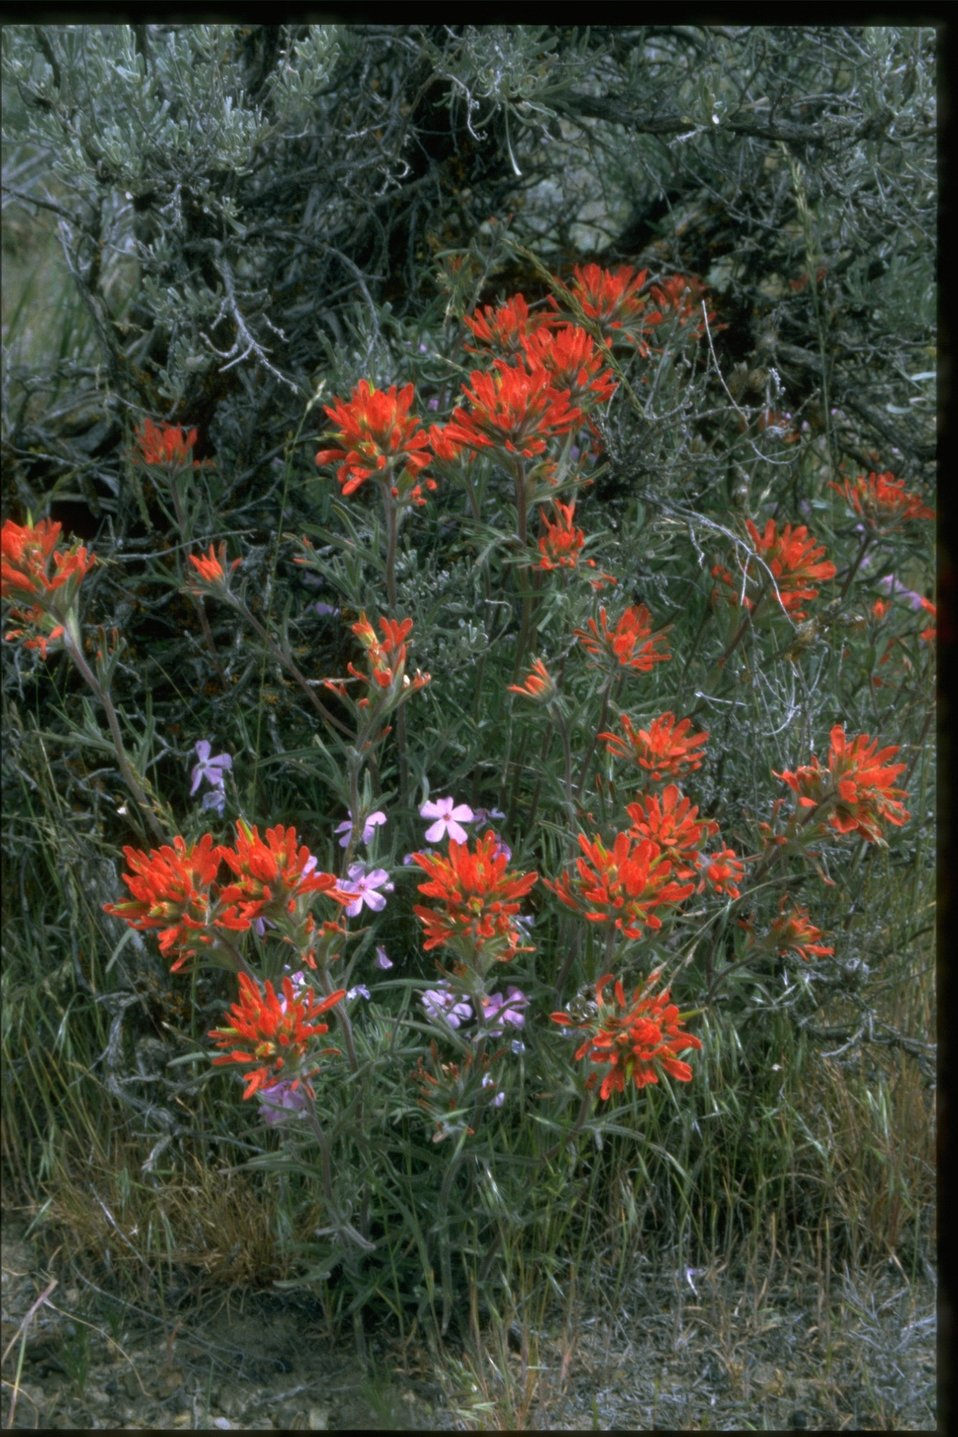 Medium shot of Indian Paintbrush (Castilleja linariaefolia) and Phlox.